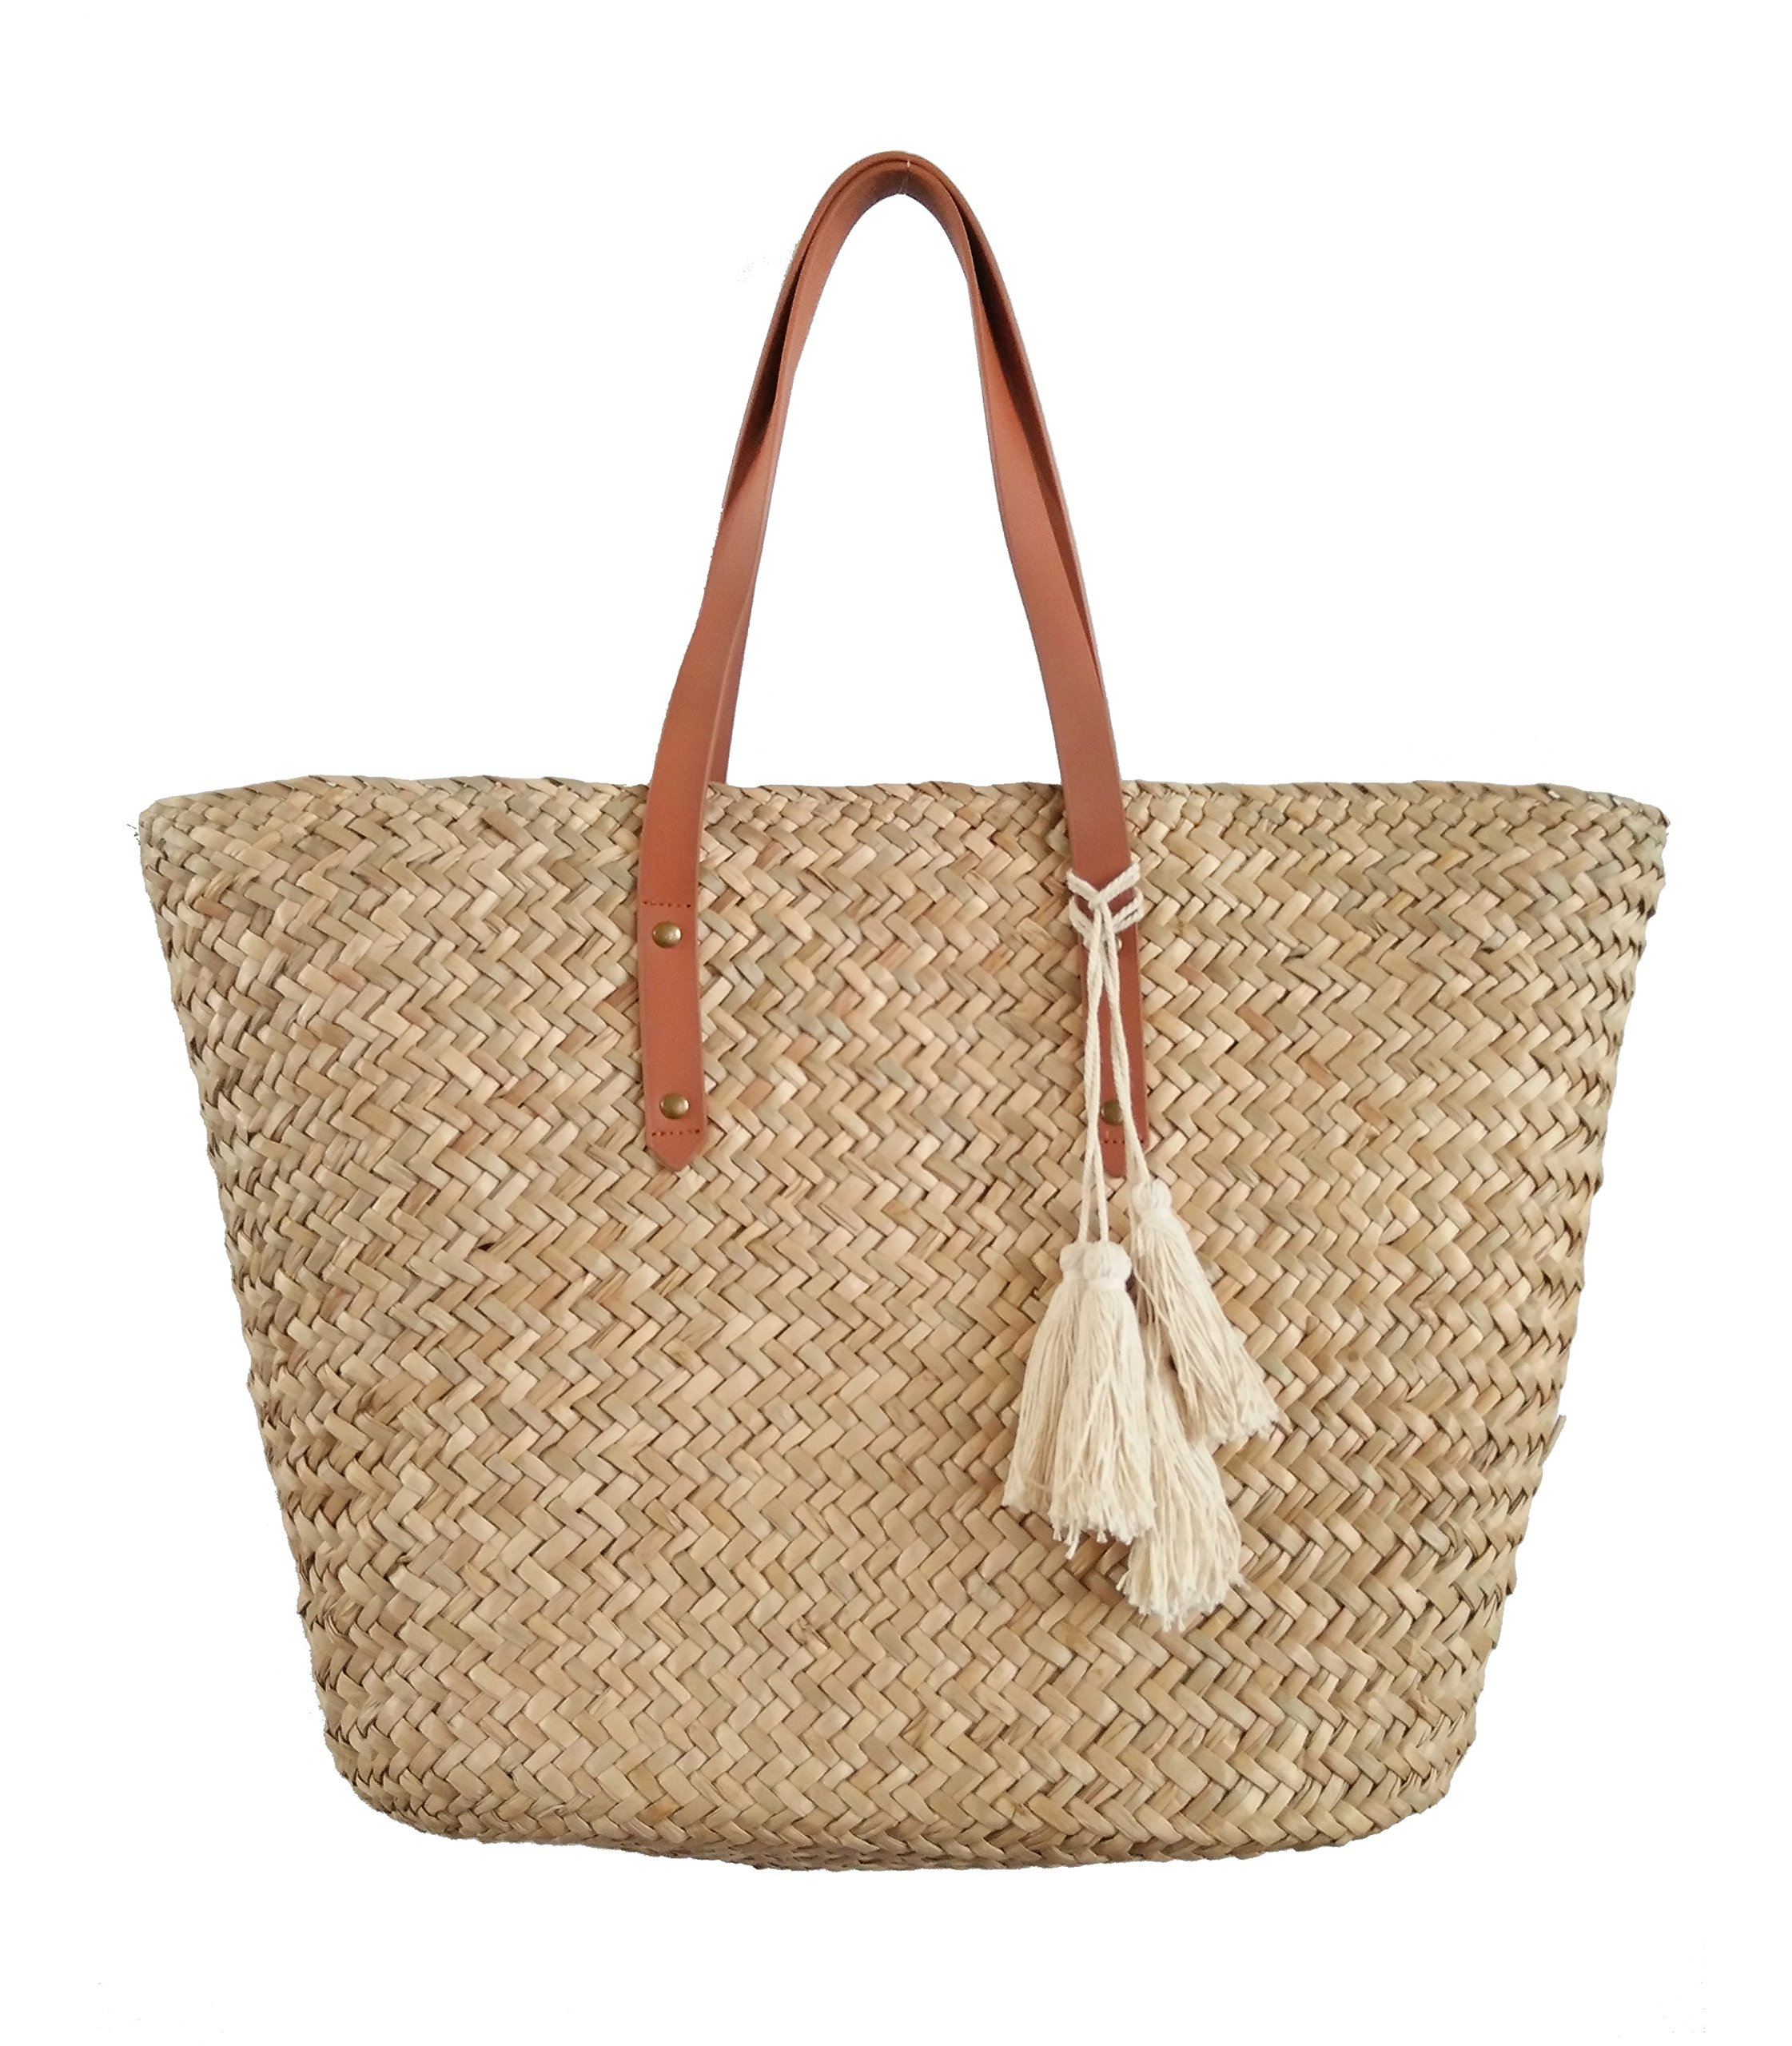 Straw Leather Beach Tote Shoulder Bag Womens Large - Washable Lining BEACH'D (Natural/Tan)